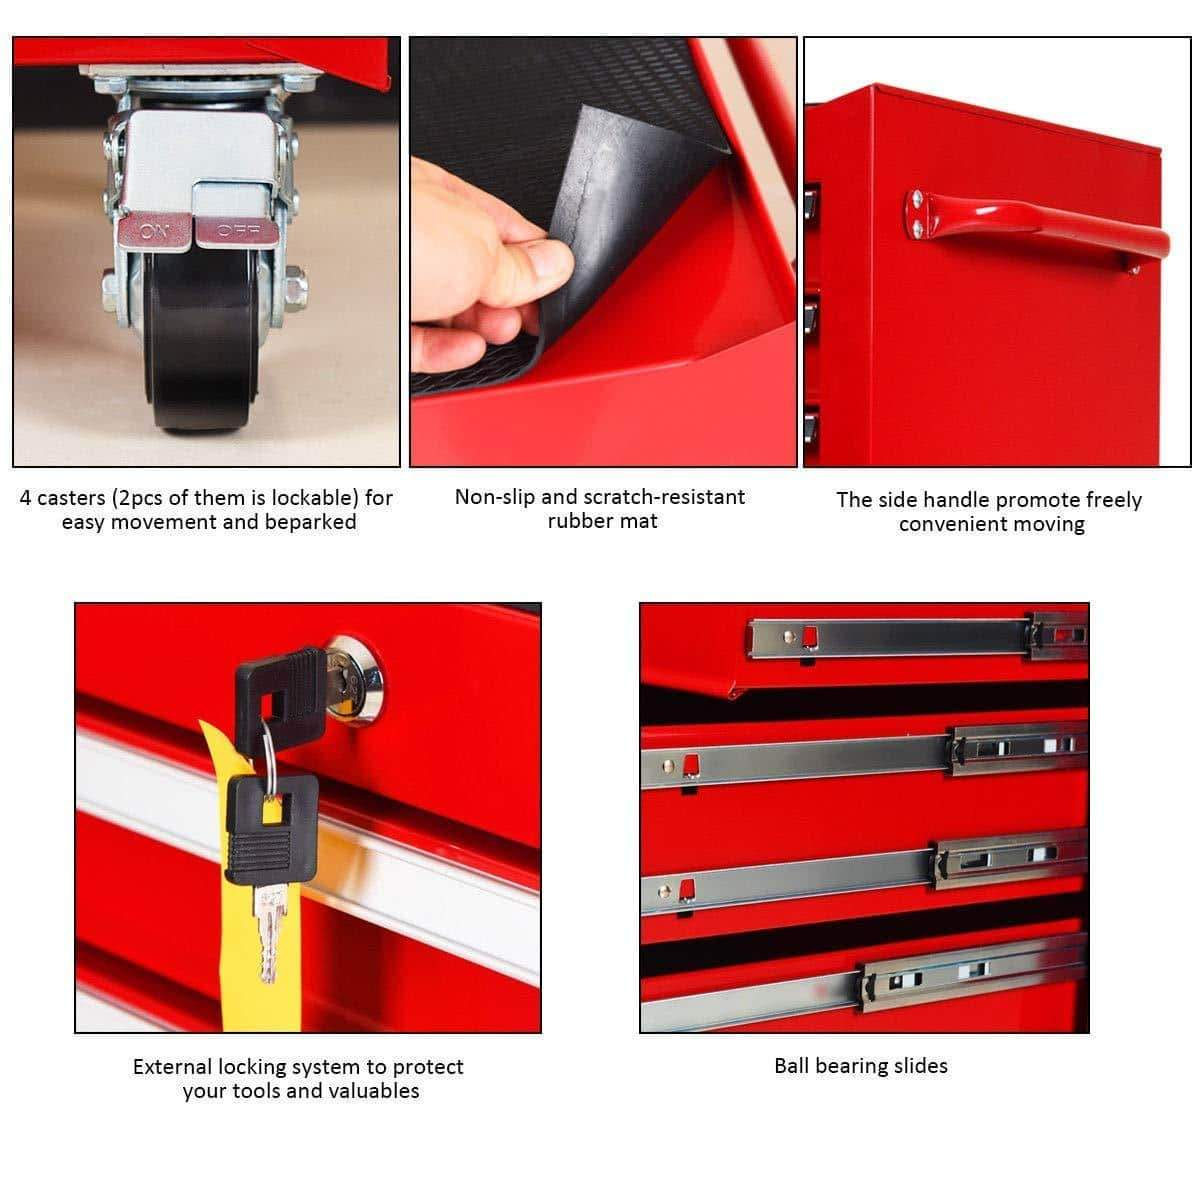 Buy goplus 30 x 24 5 tool box cart portable 6 drawer rolling storage cabinet multi purpose tool chest steel garage toolbox organizer with wheels and keyed locking system classic red